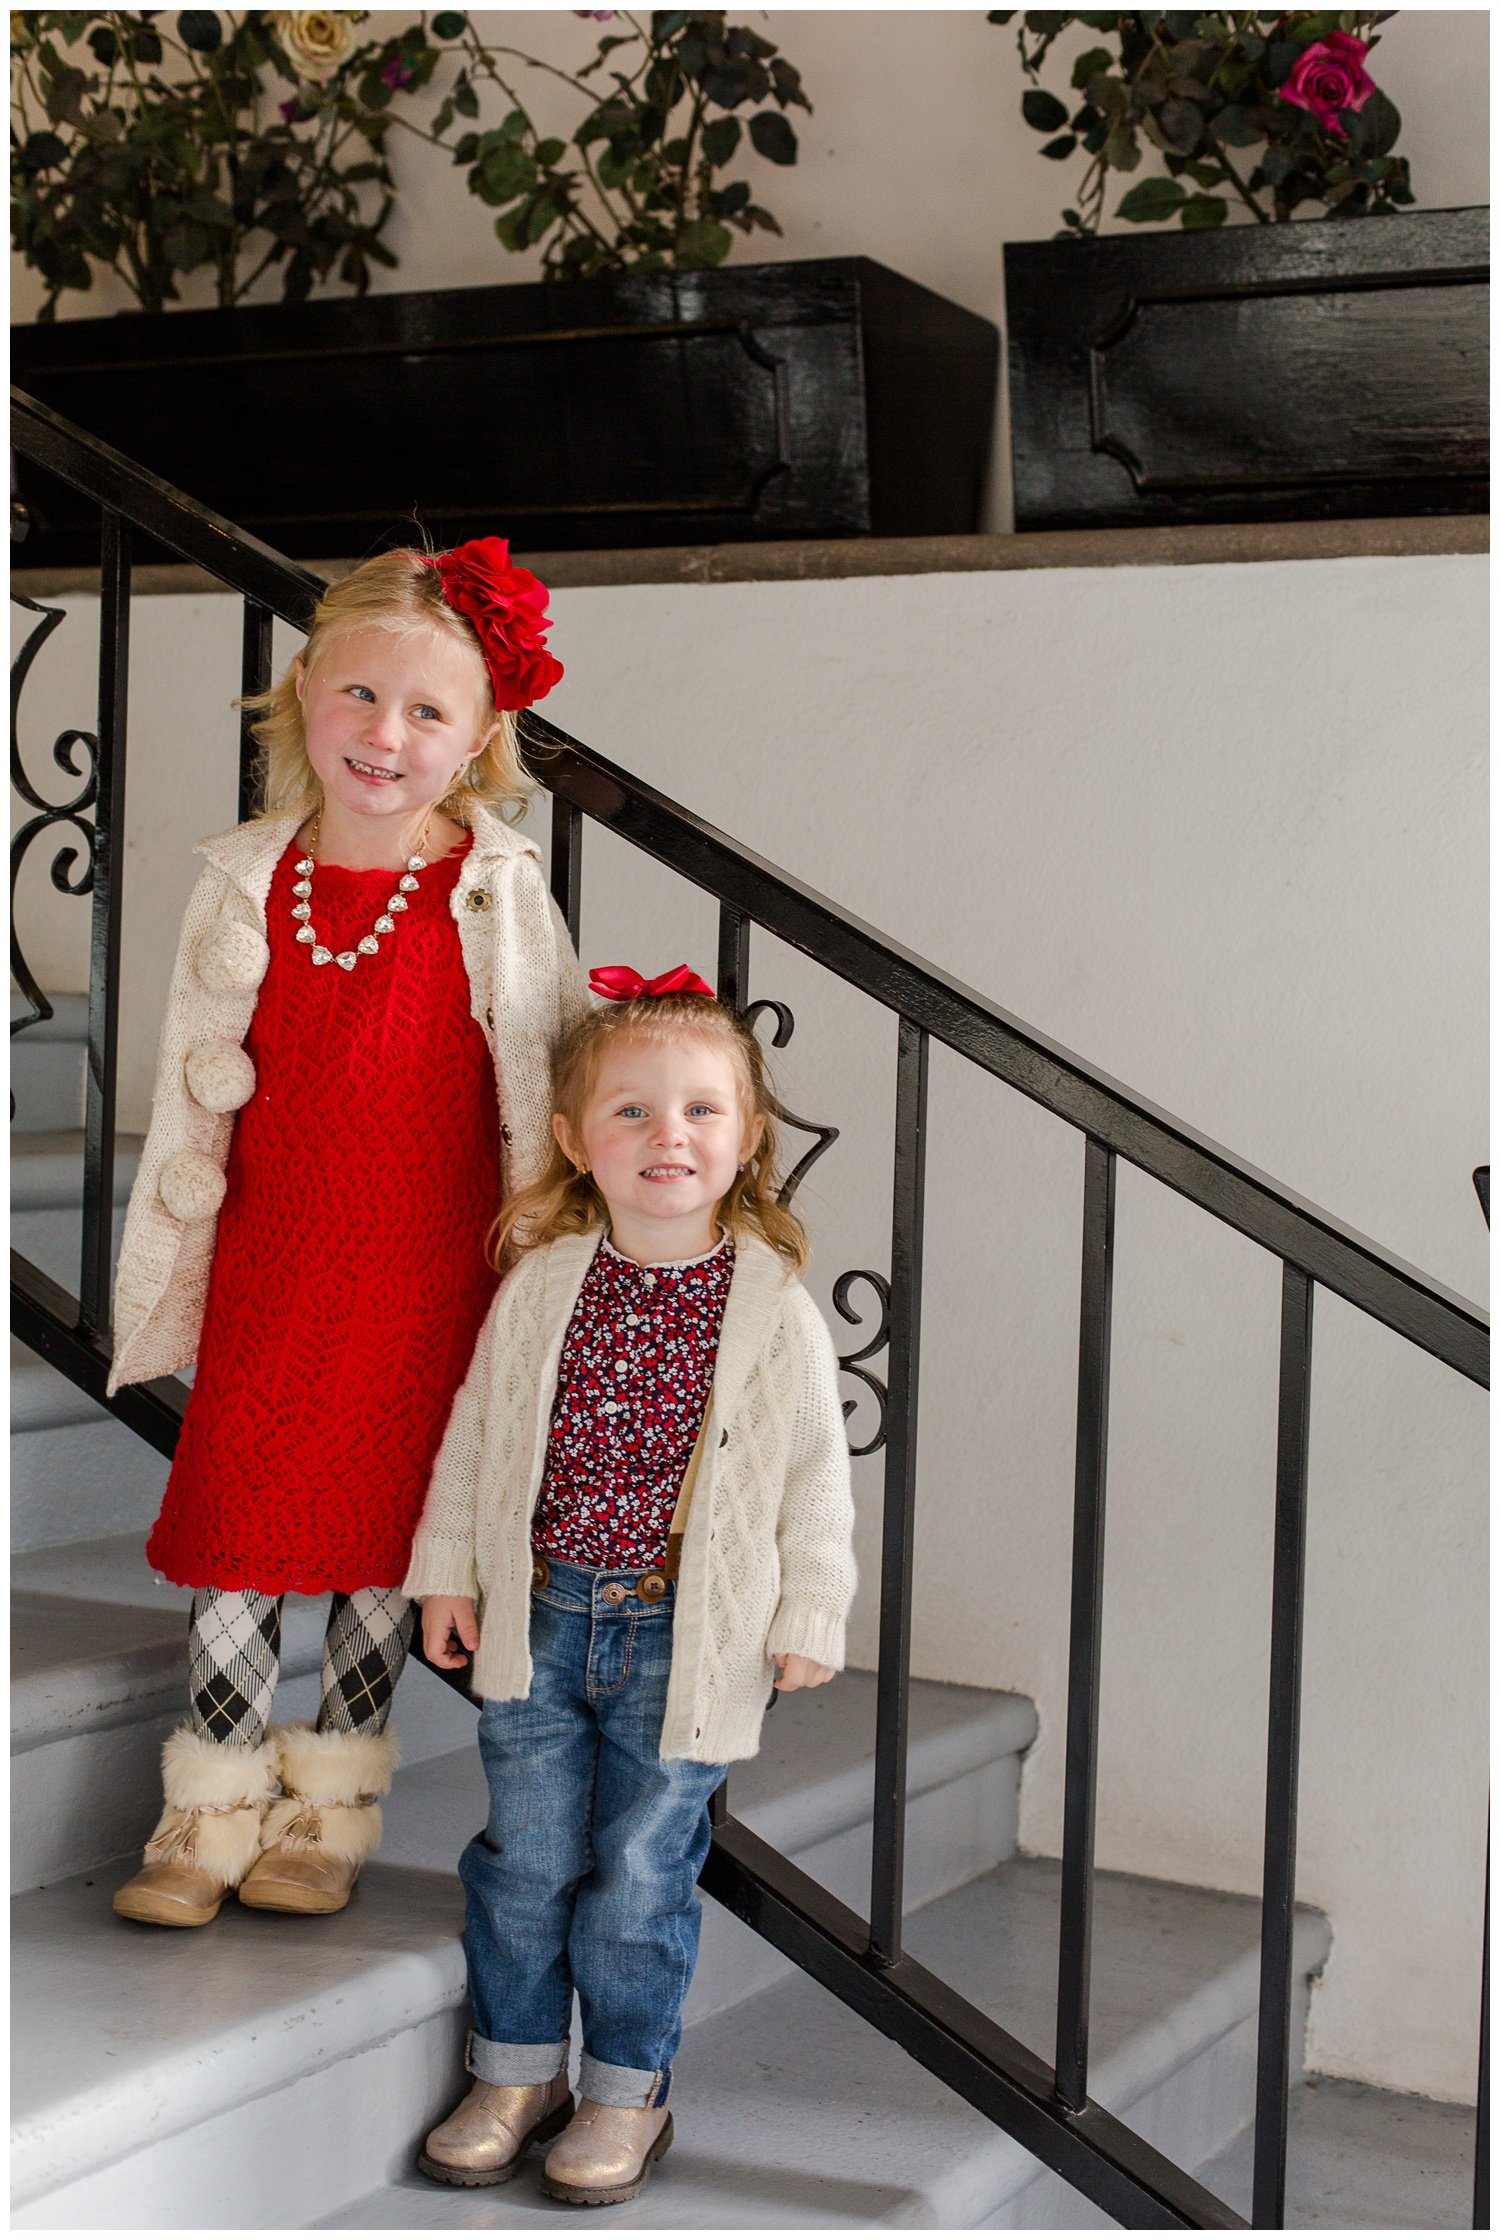 These sisters are perfectly coordinated and cozy warm! We took these images in downtown Reno on a chilly day! They had the perfect shoes on for keeping their feet warm and walking around town and their cardigans were fashionable and cozy so that we had happy smiles through the session.